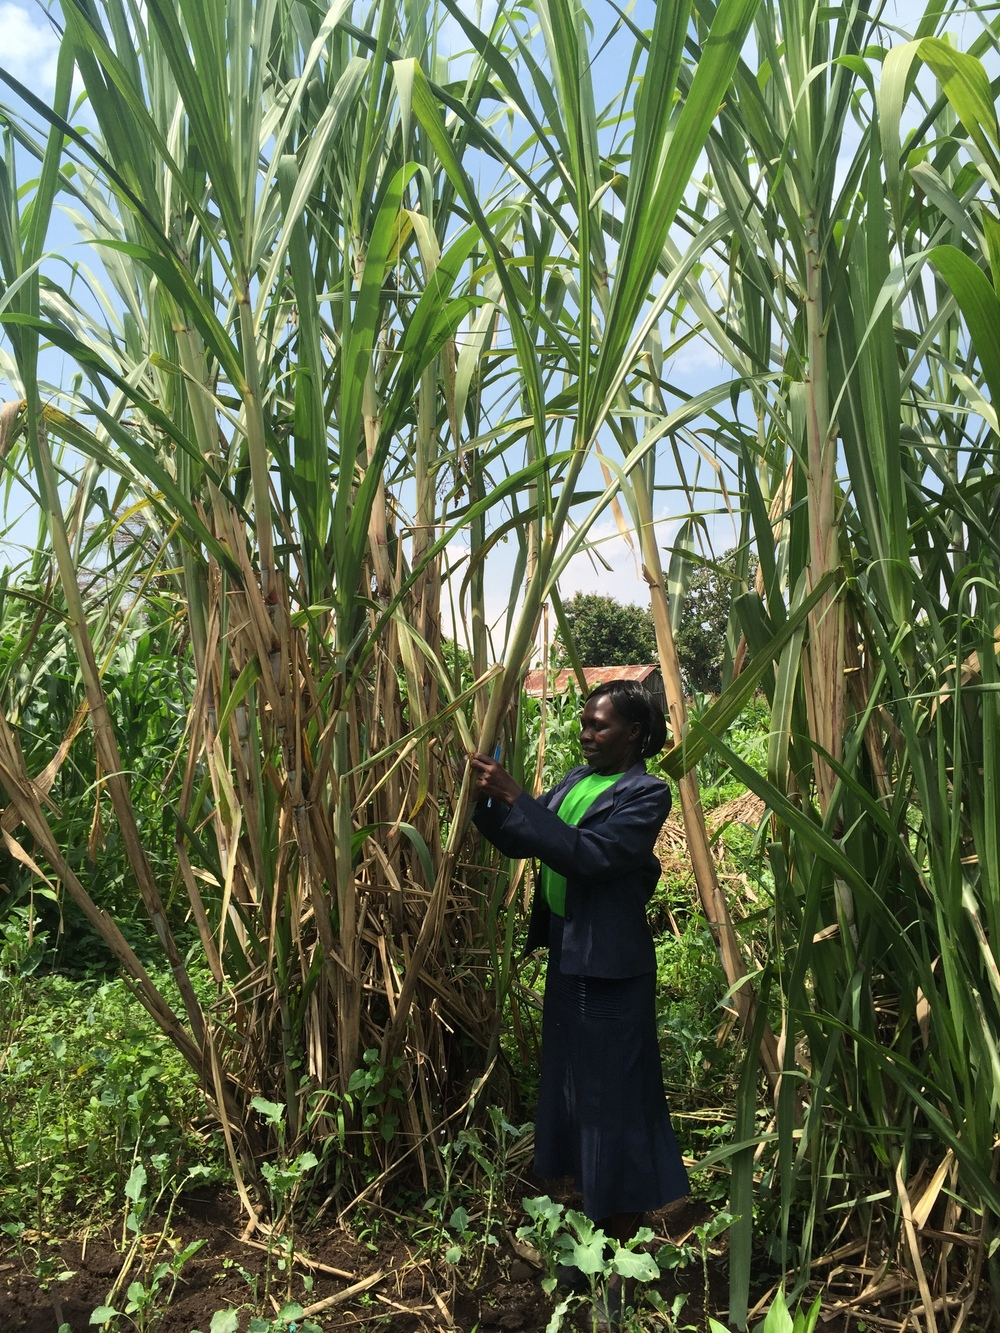 Helen taking down the stalk of sugarcane